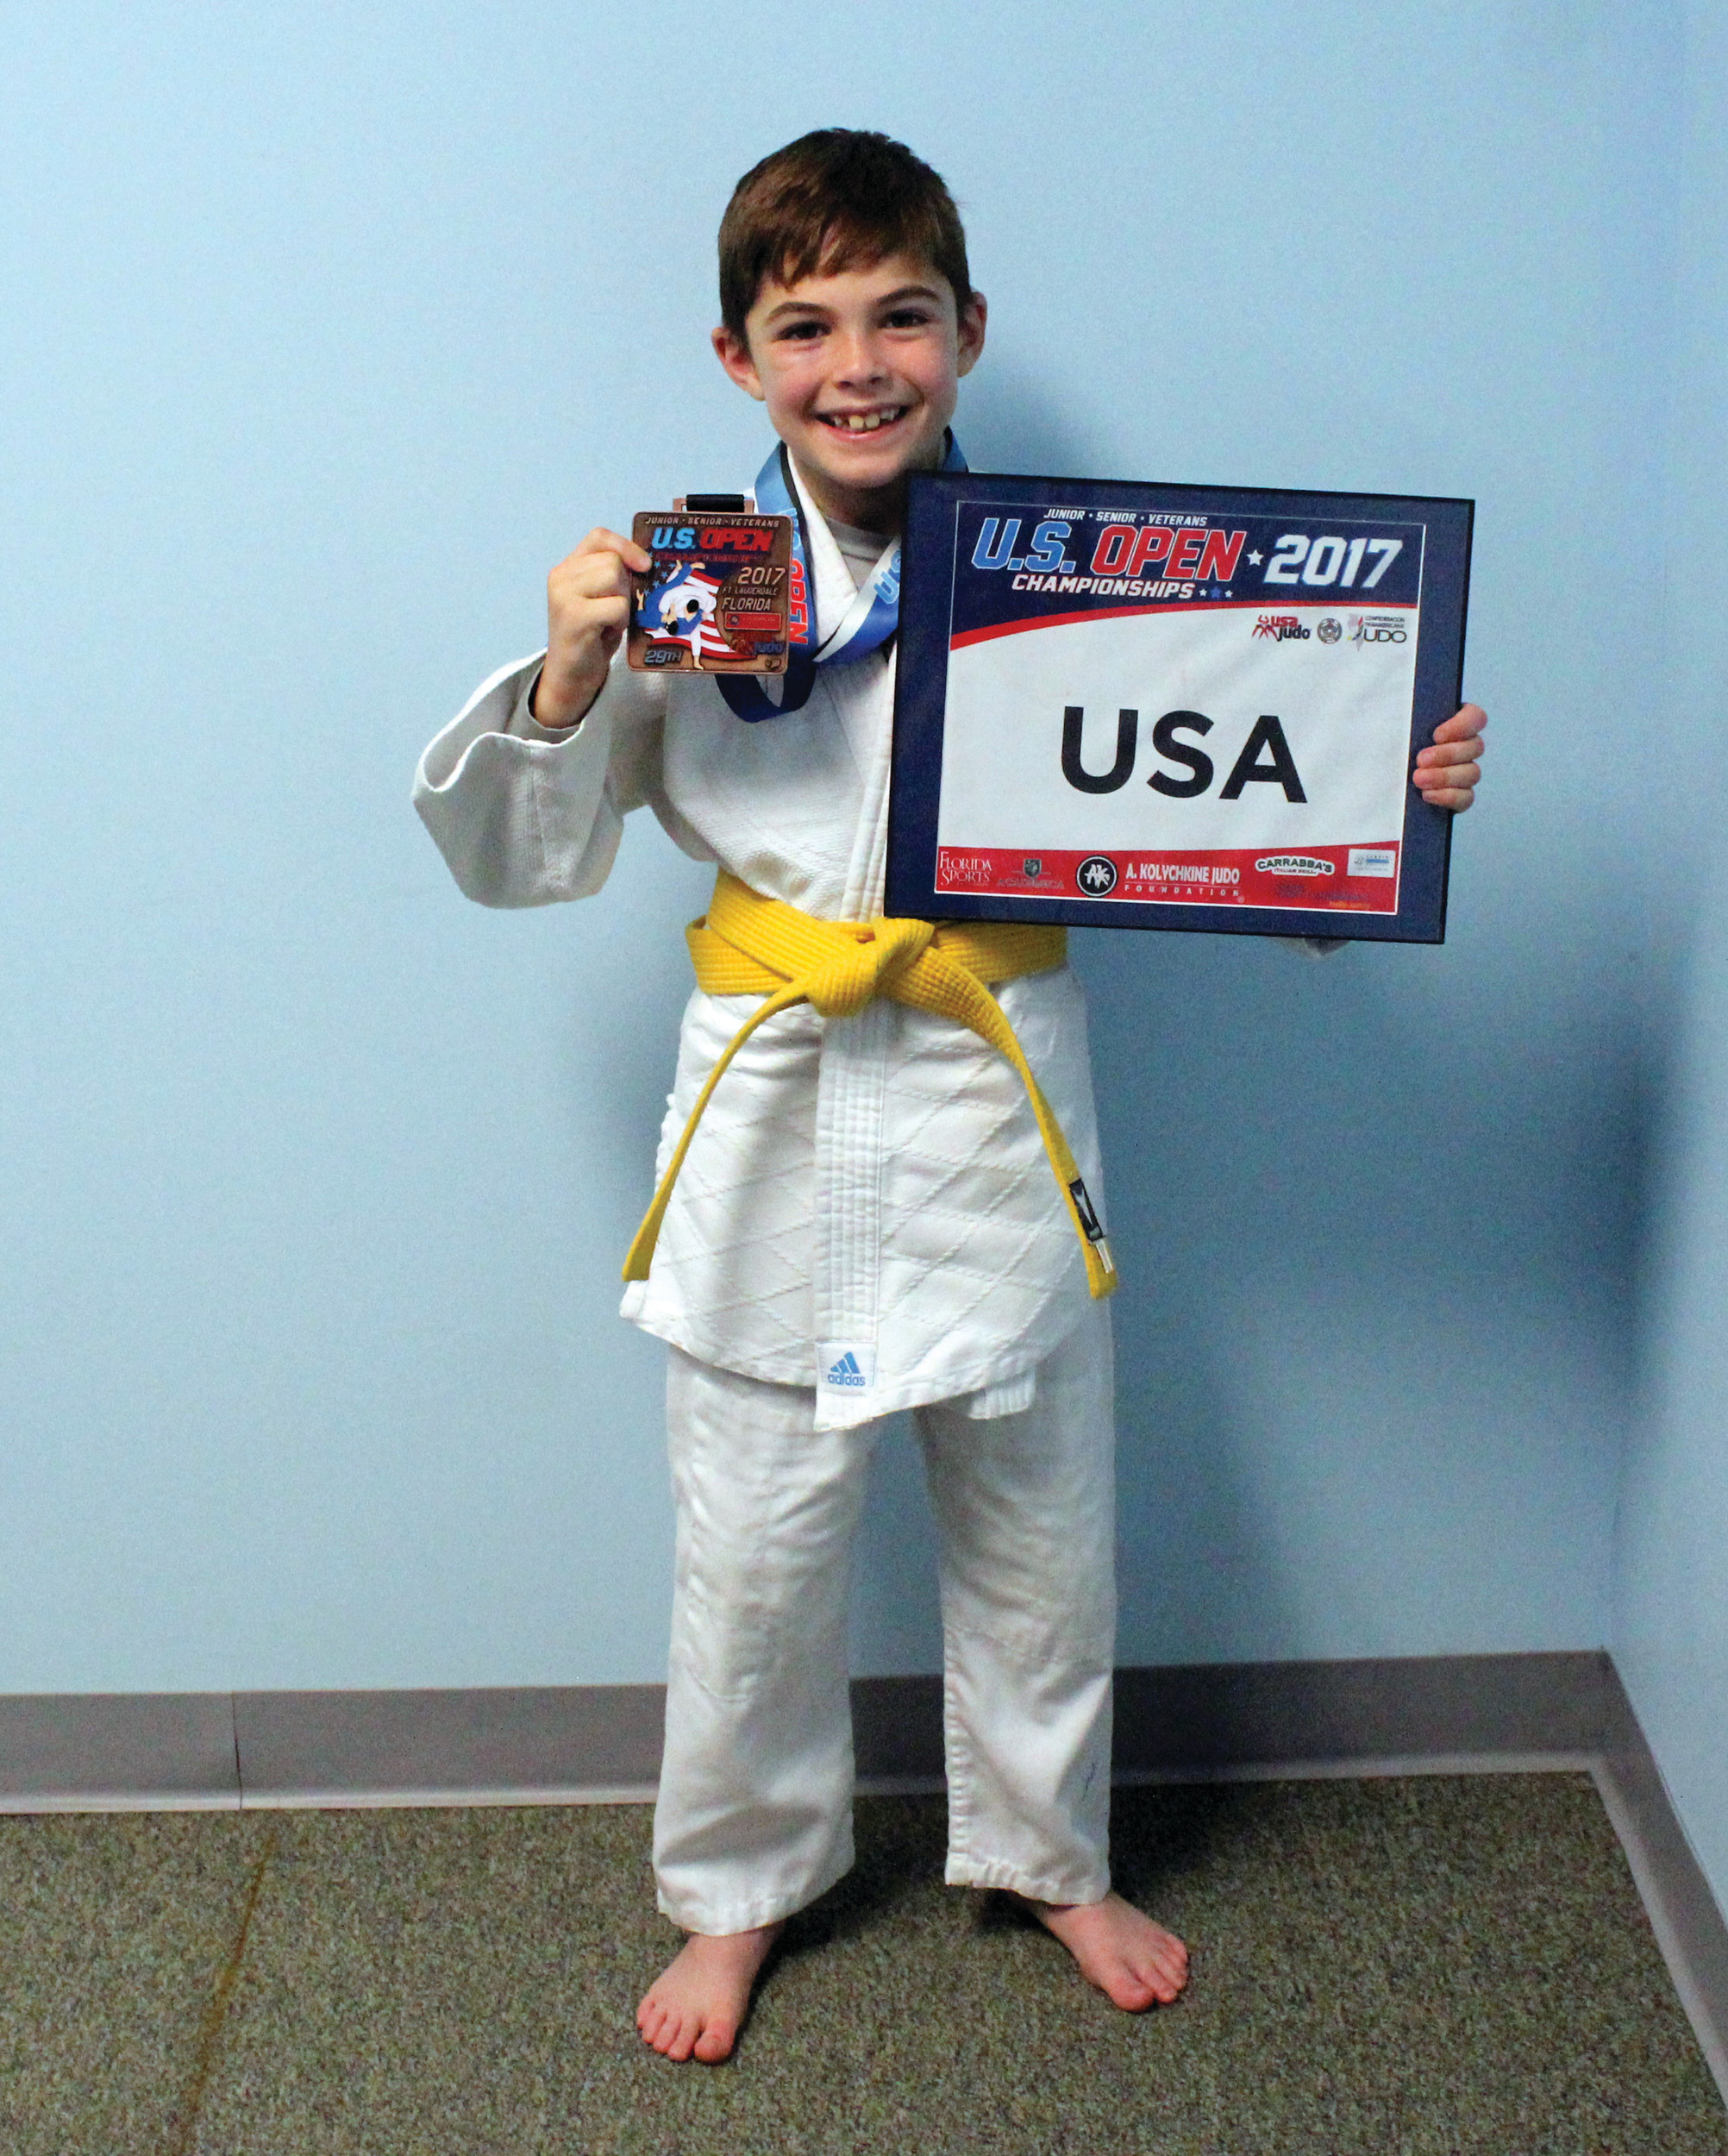 STRONG SHOWING: Michael Owens, Jr. recently earned bronze at the U.S. Open Judo Championships in Fort Lauderdale, Florida.